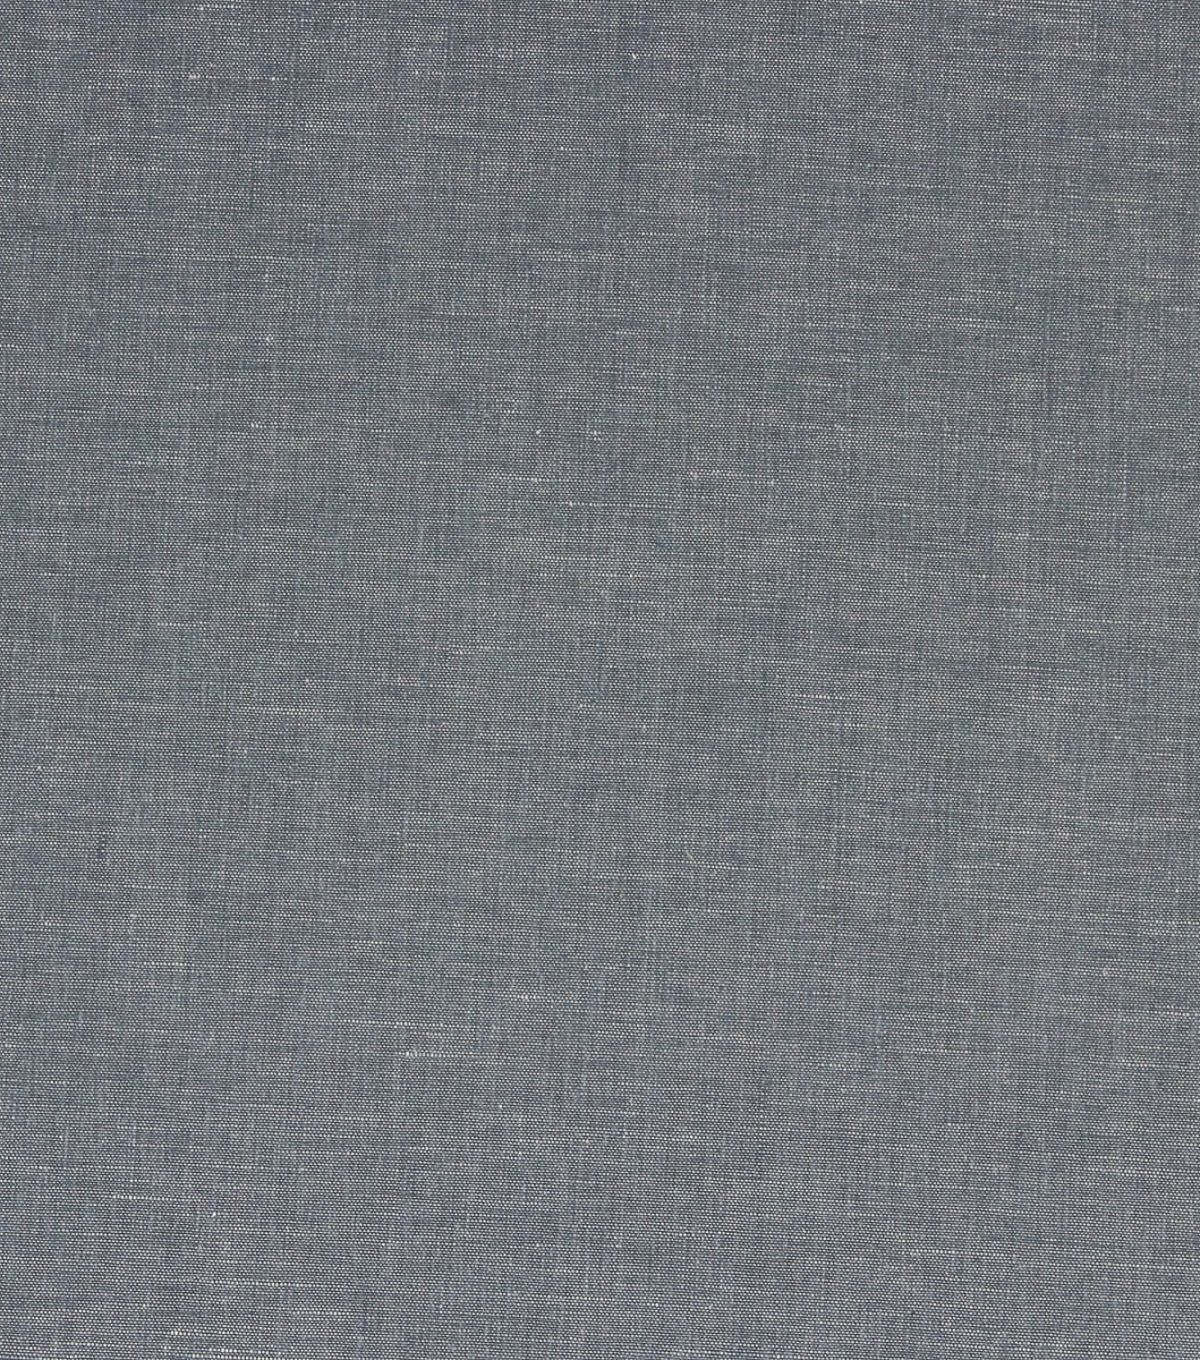 Greece Chambray Swatch